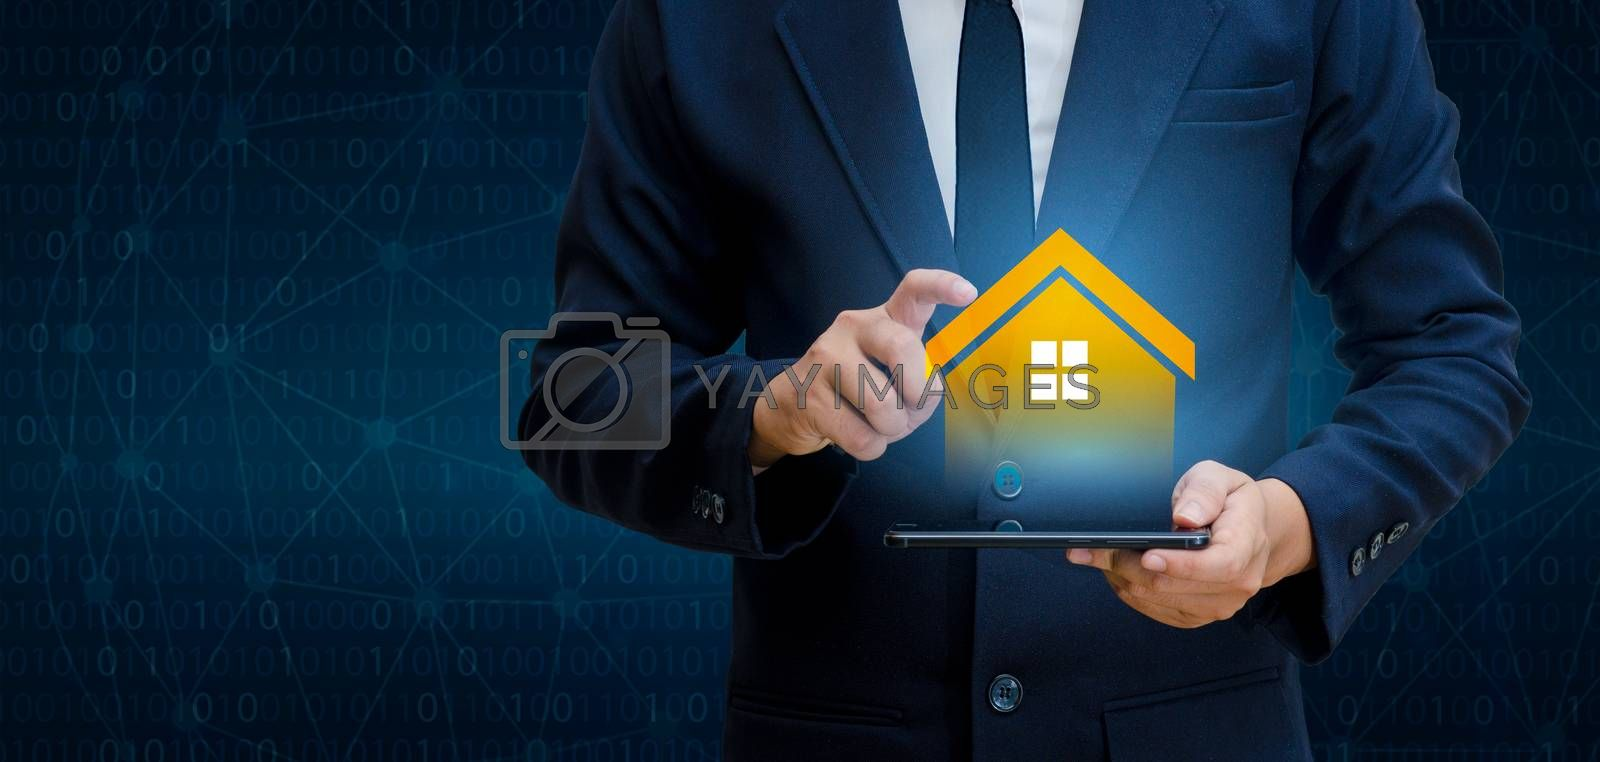 The house is in the hands of the business man  home icon or symbol by Sarayut